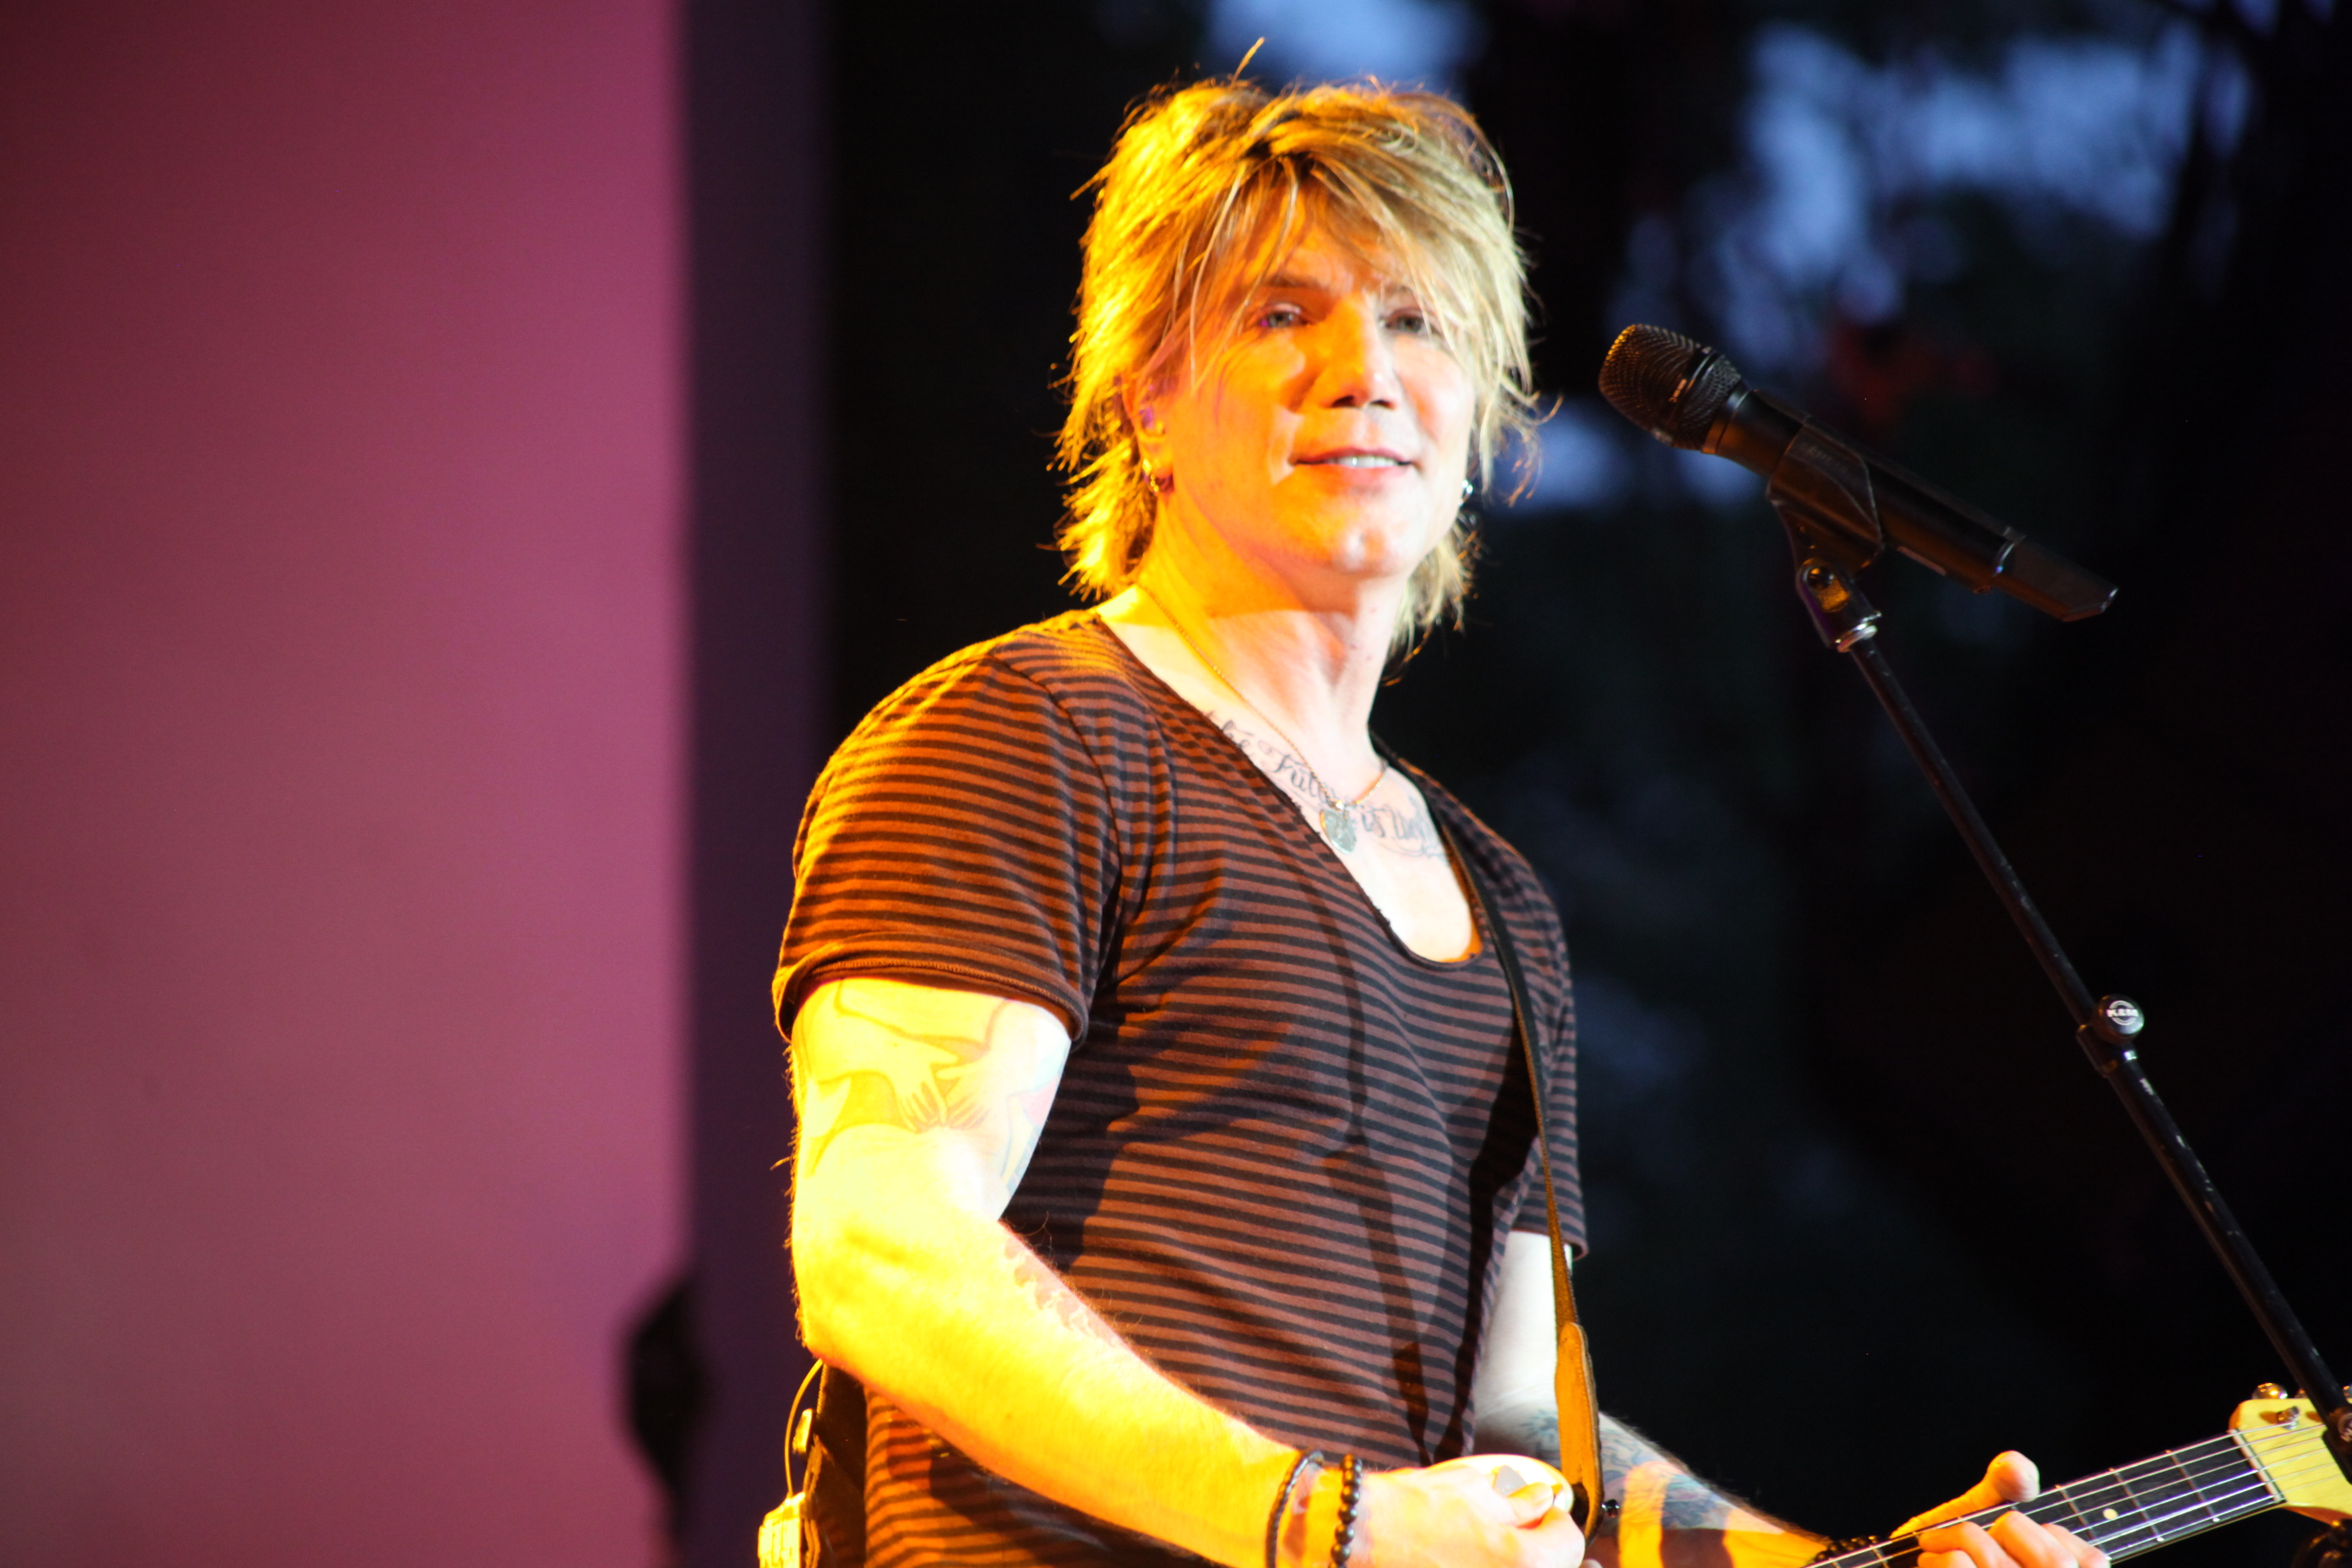 John Rzeznik, lead singer of the Goo Goo Dolls, performs with his band on Thursday, June 19 at the St. Augustine Amphitheatre. Photos by RENEE UNSWORTH